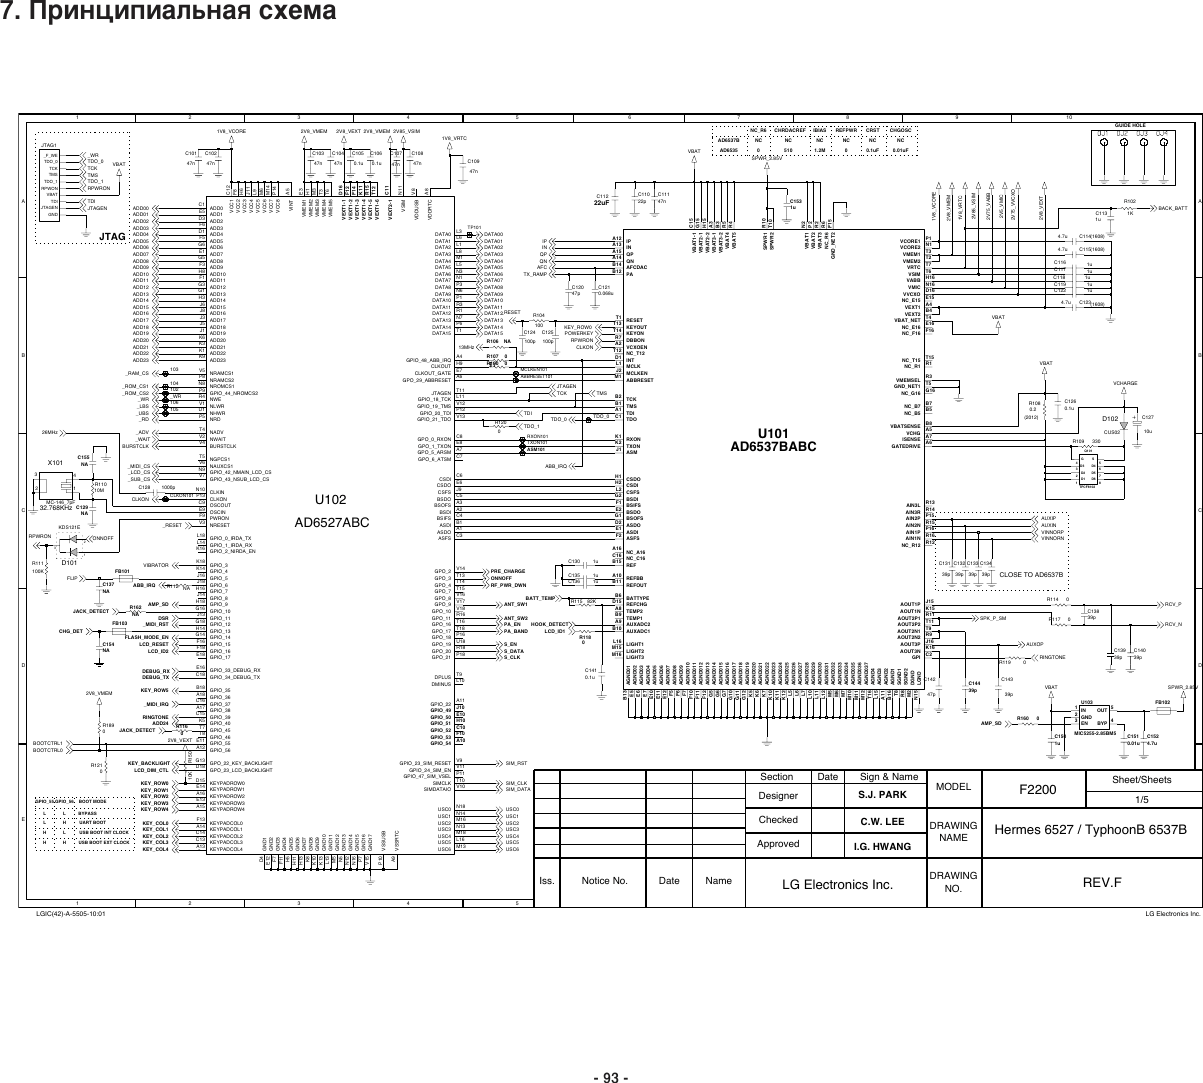 LG F2200 Schematics. Www.s manuals.com. Schematics